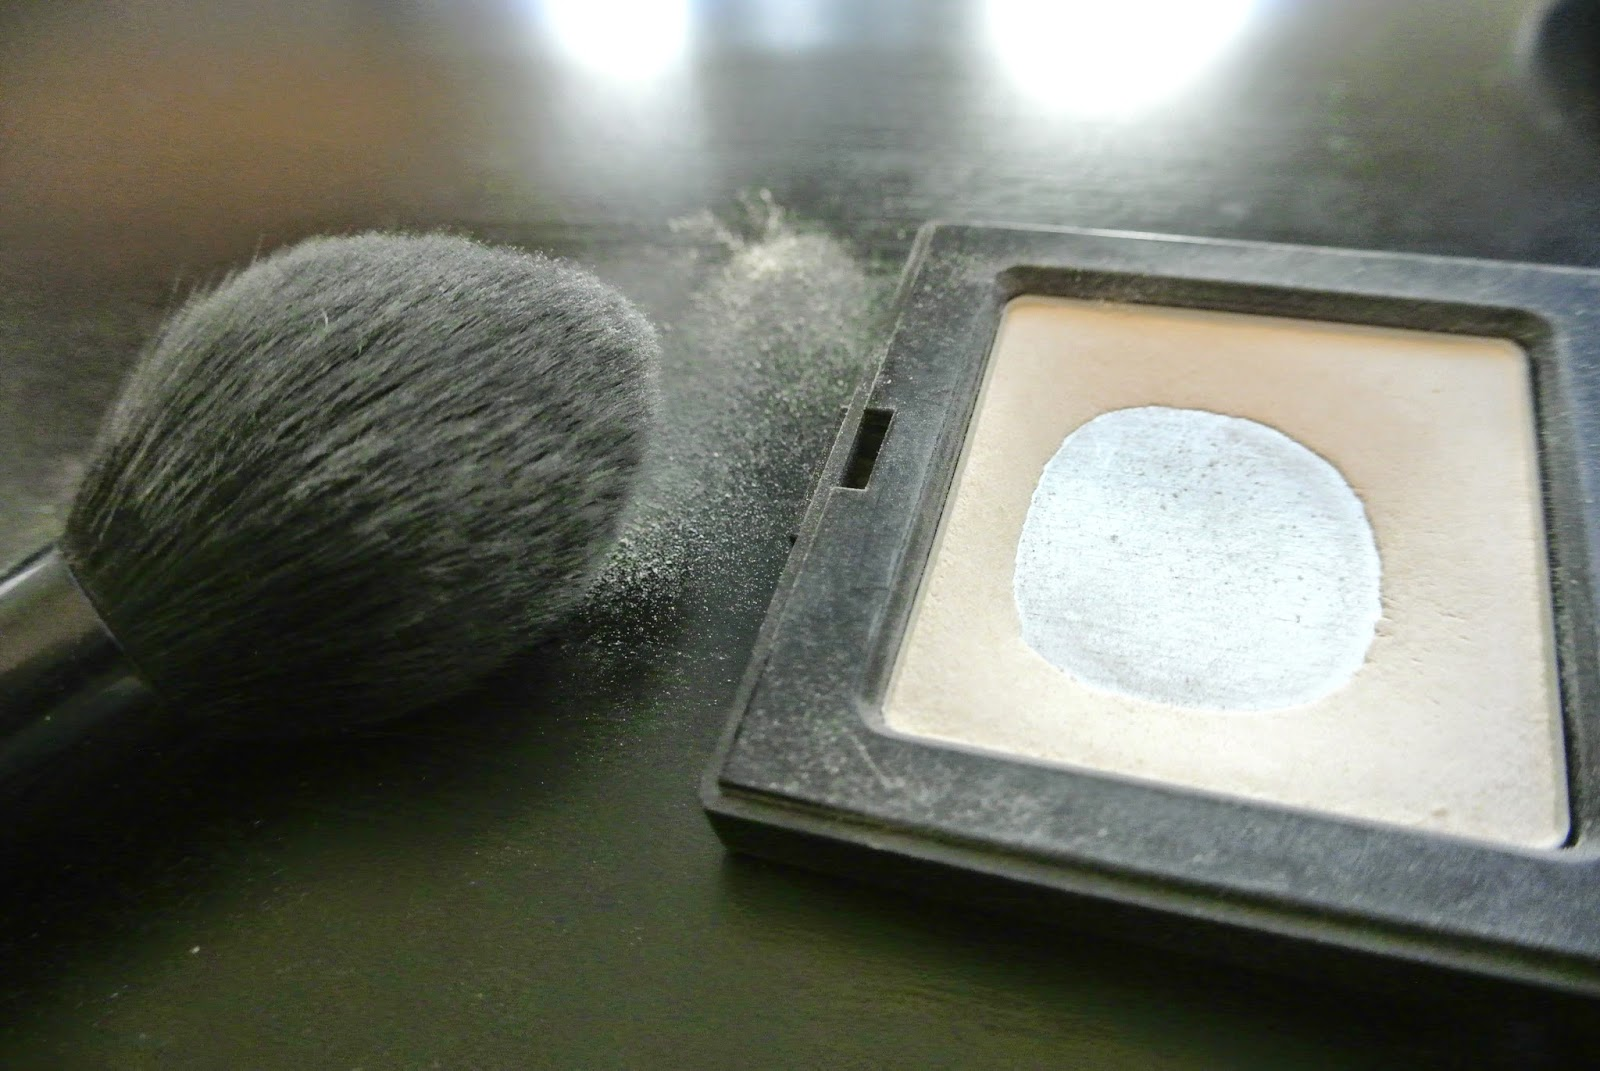 Setting powder on brush, compact shown with obvious wear.